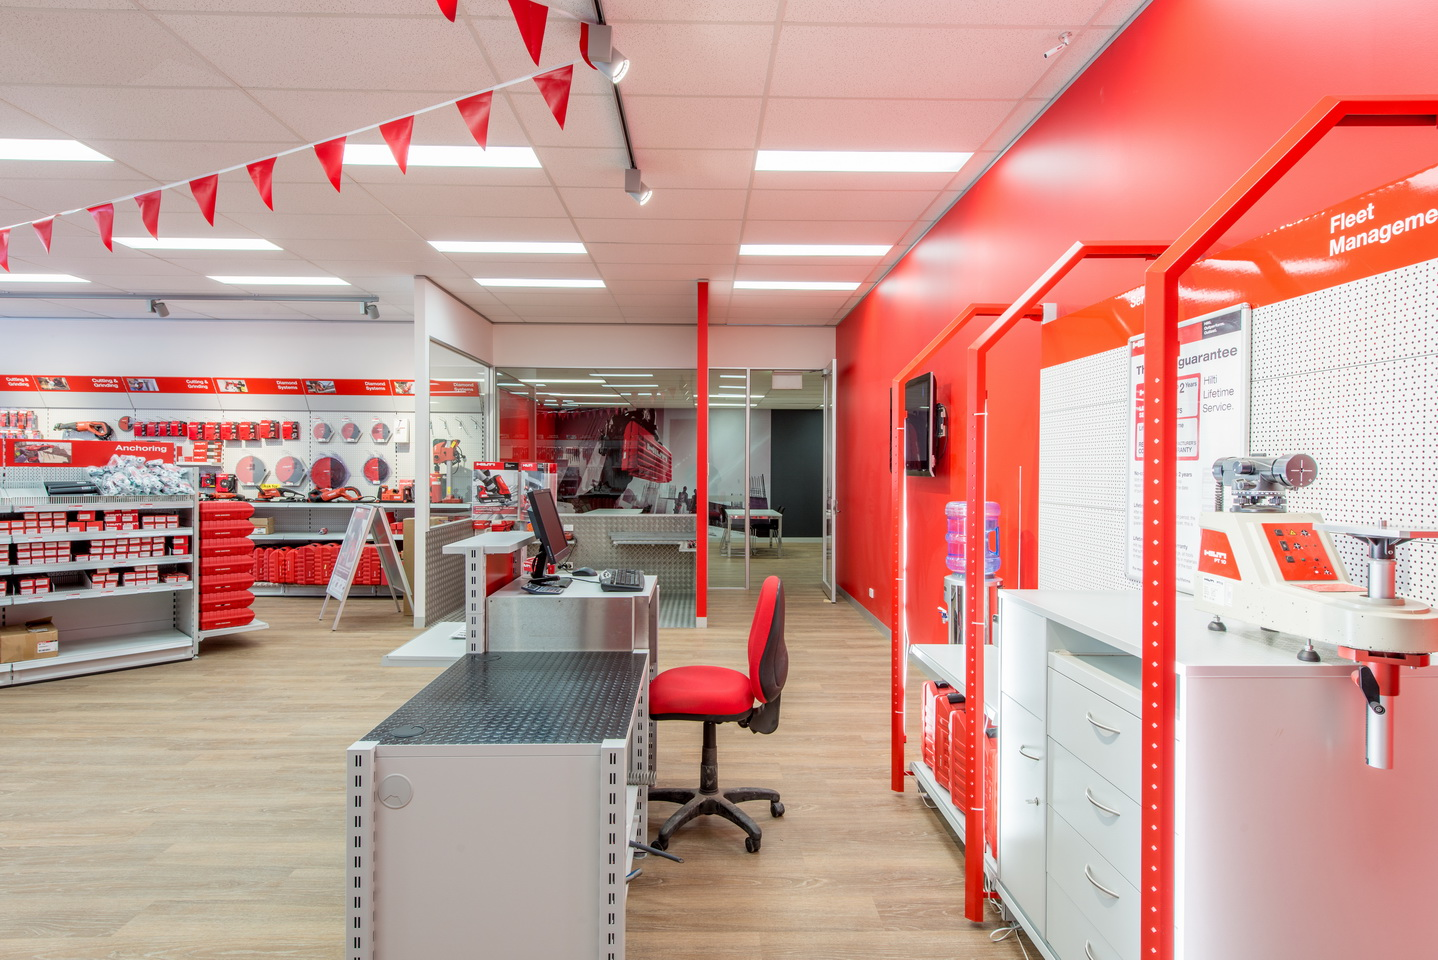 Hilti at south melbourne architectural photography for Office design events